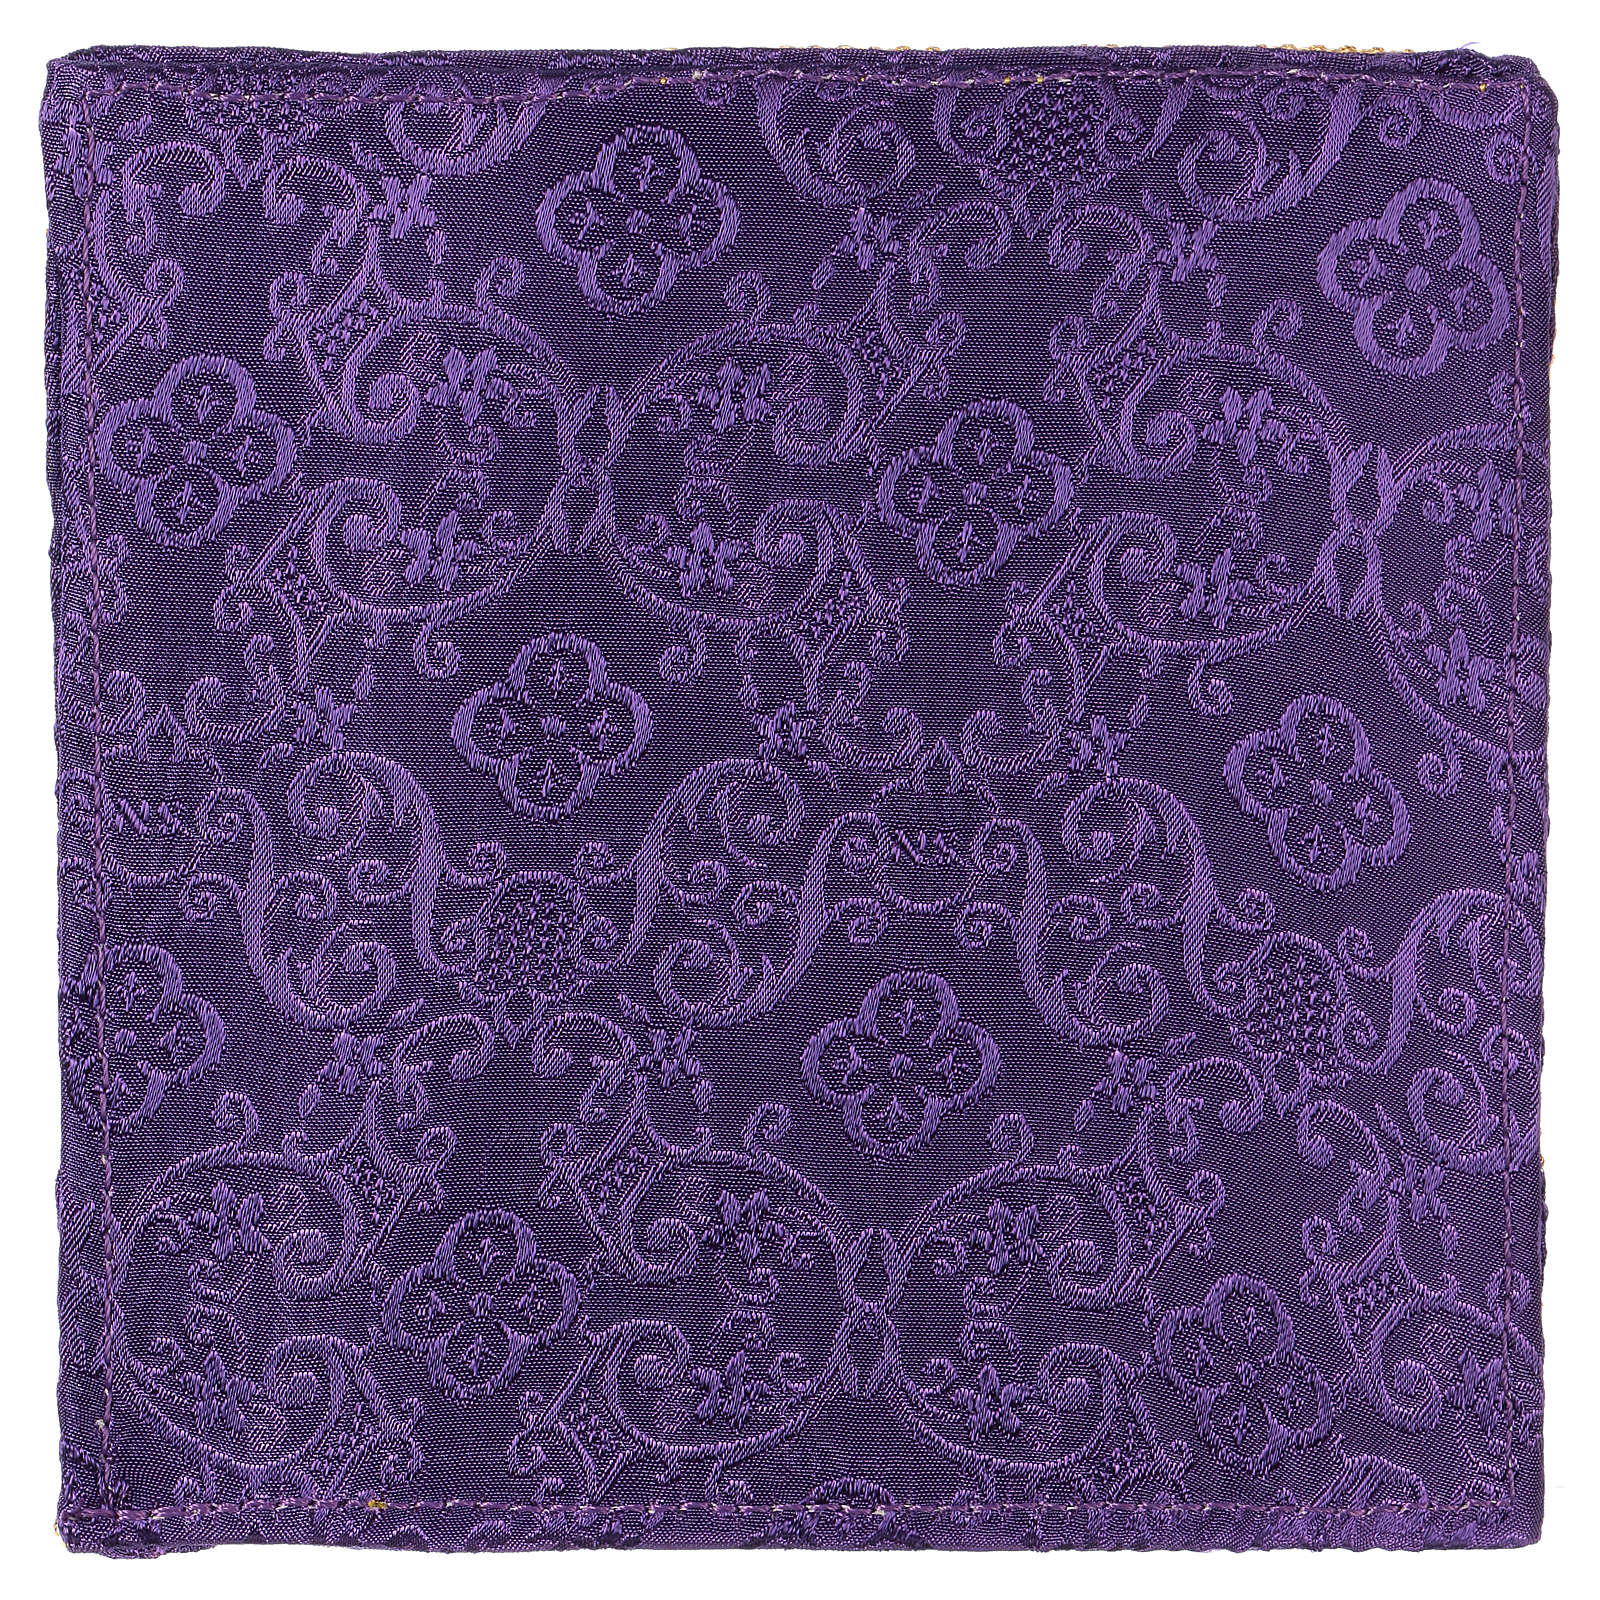 Chalice veil (pall) with cross embroidery on purple damask fabric 4